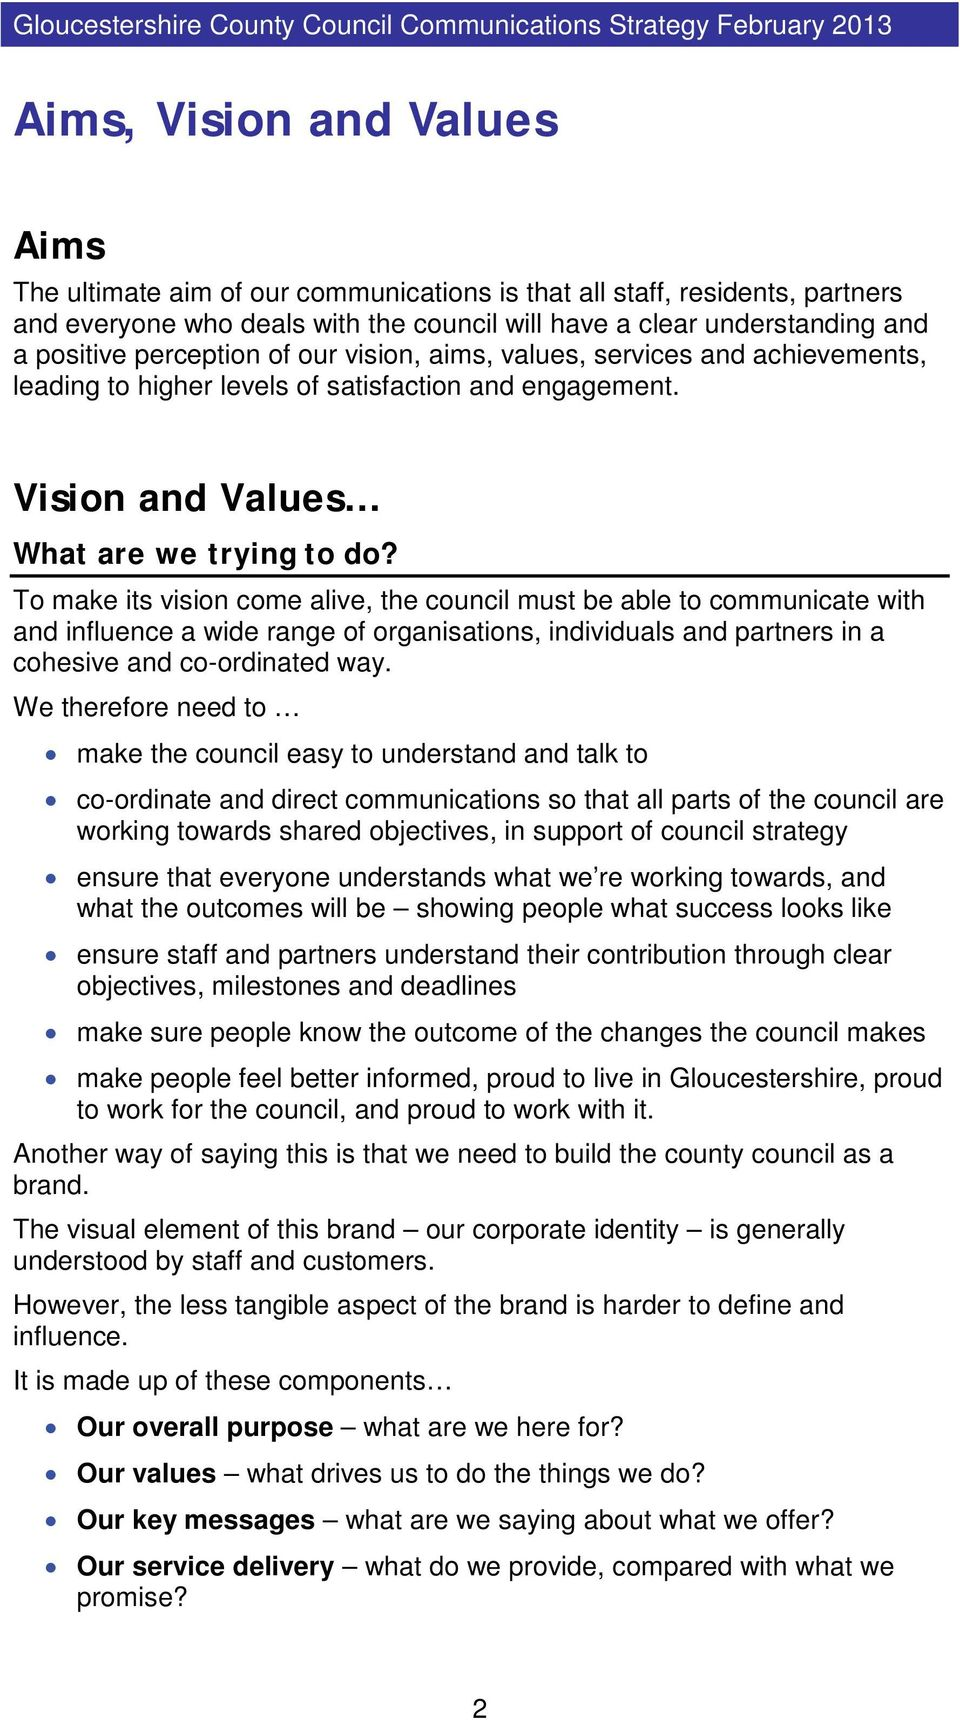 To make its vision come alive, the council must be able to communicate with and influence a wide range of organisations, individuals and partners in a cohesive and co-ordinated way.